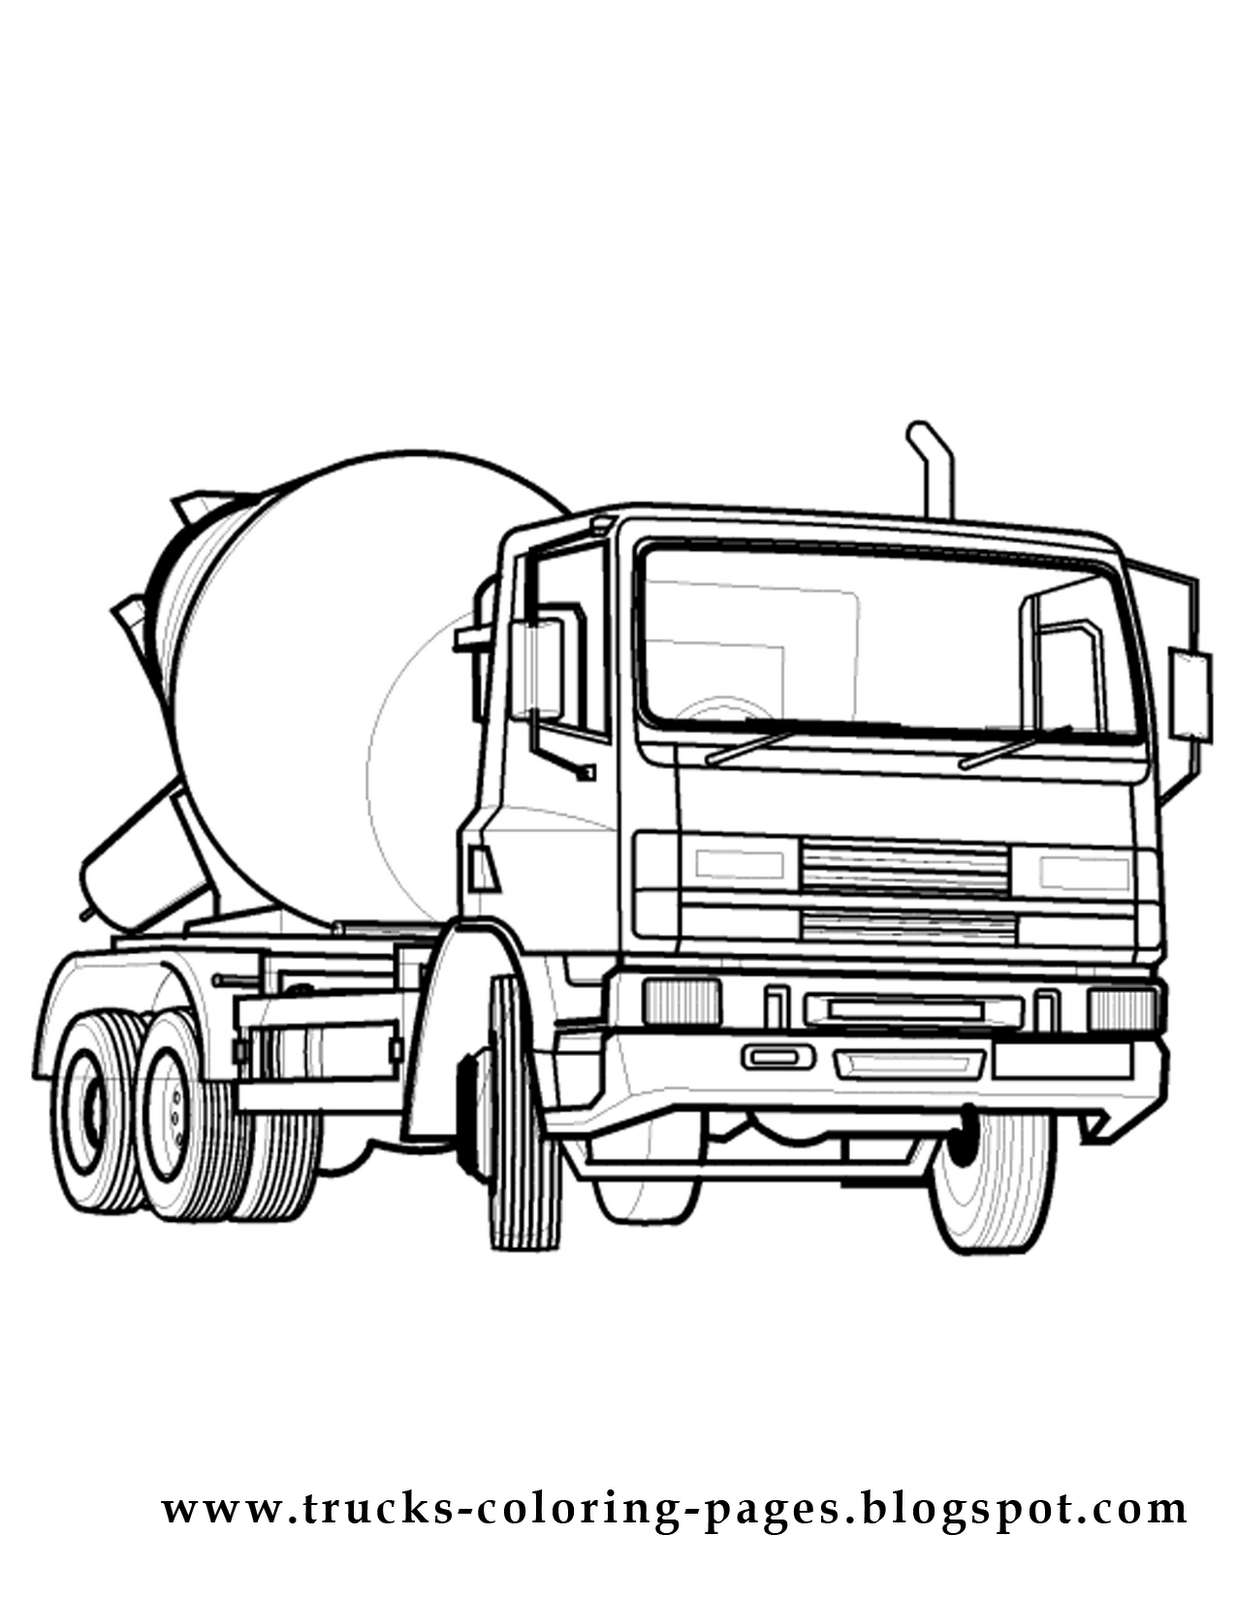 Printable coloring pages of cars and trucks 9 image for Coloring pages cars and trucks